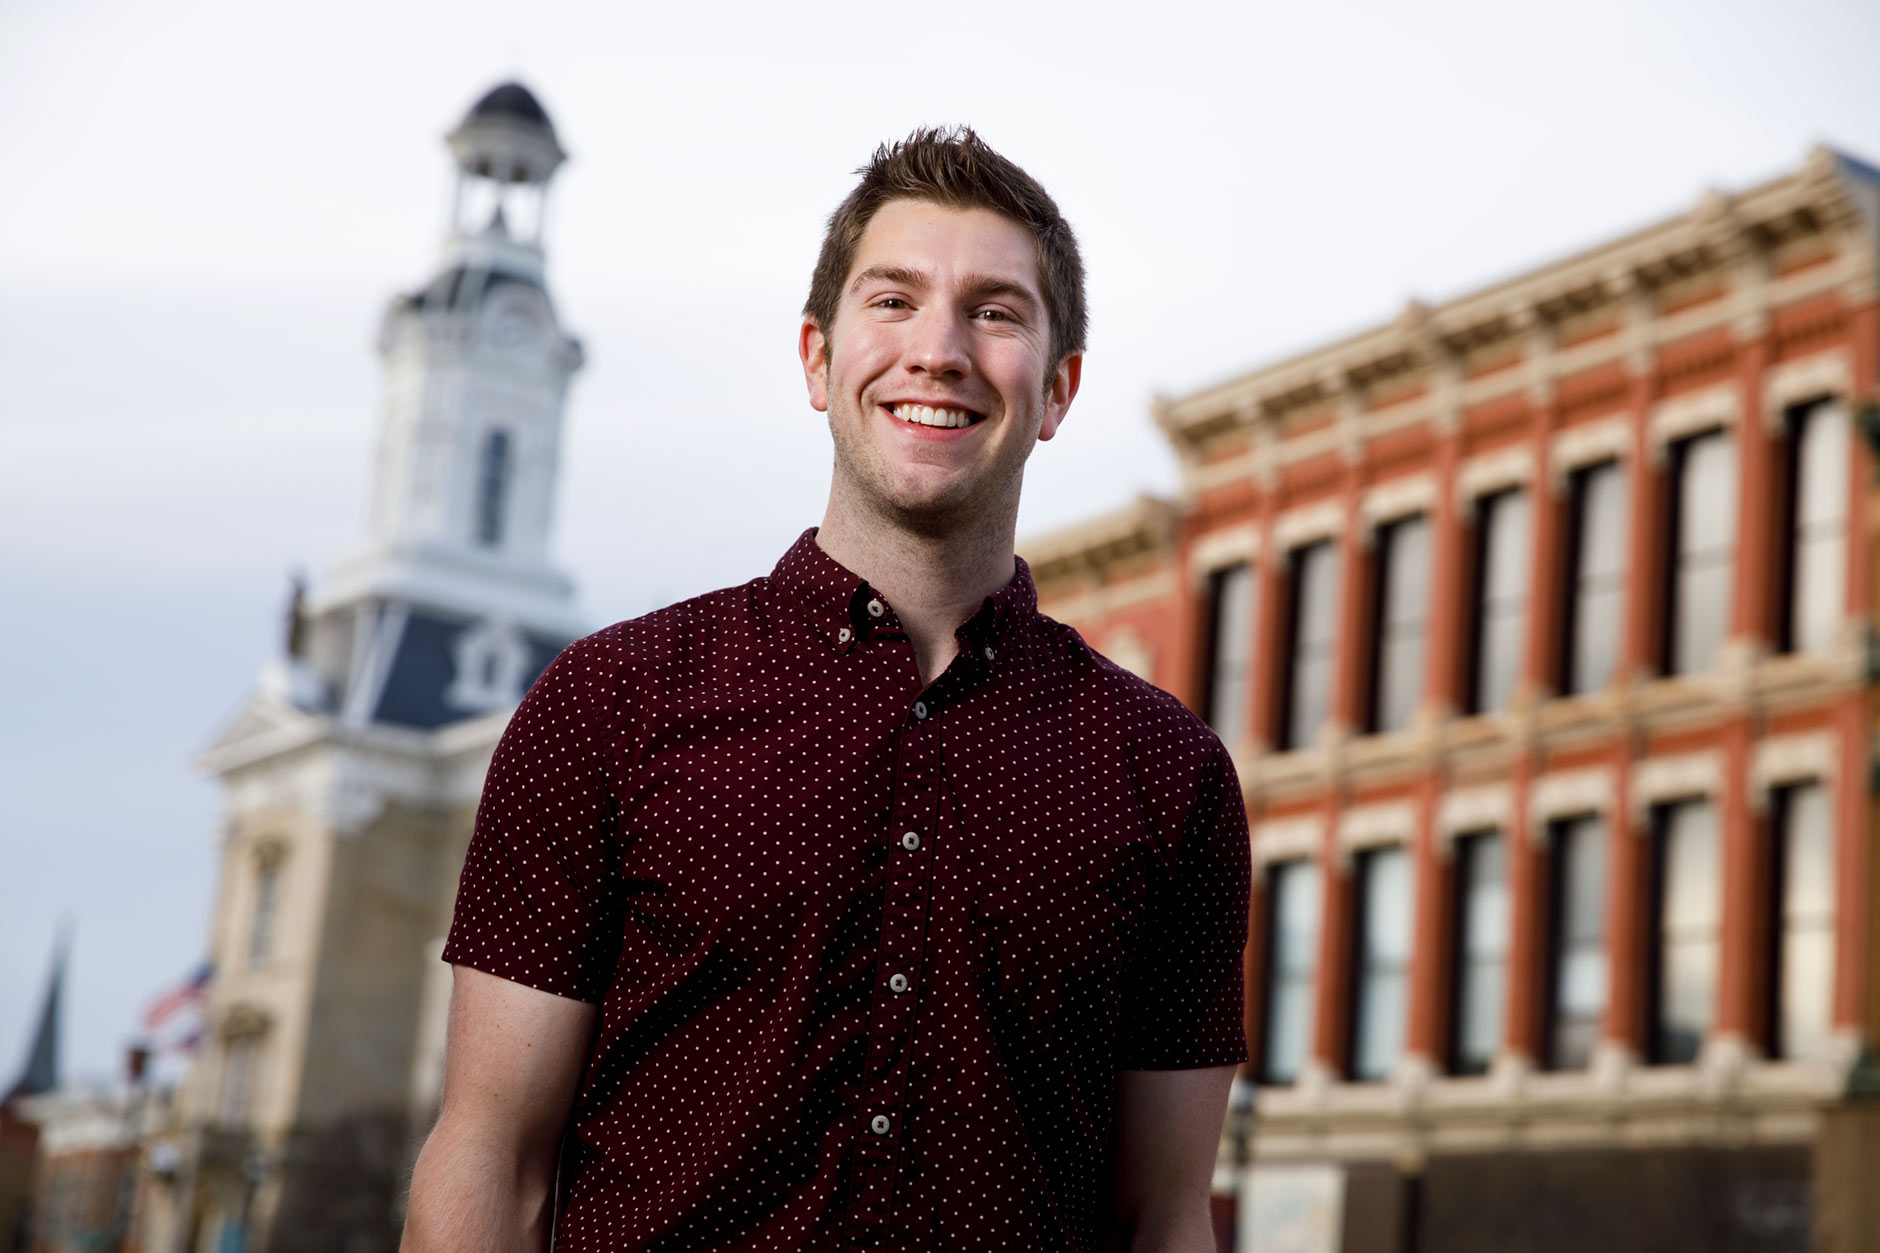 Justin Westfall, a graduating IU Online student, poses for a portrait in downtown Greenville, Ohio on Friday, April 6, 2018. (James Brosher/IU Communications)